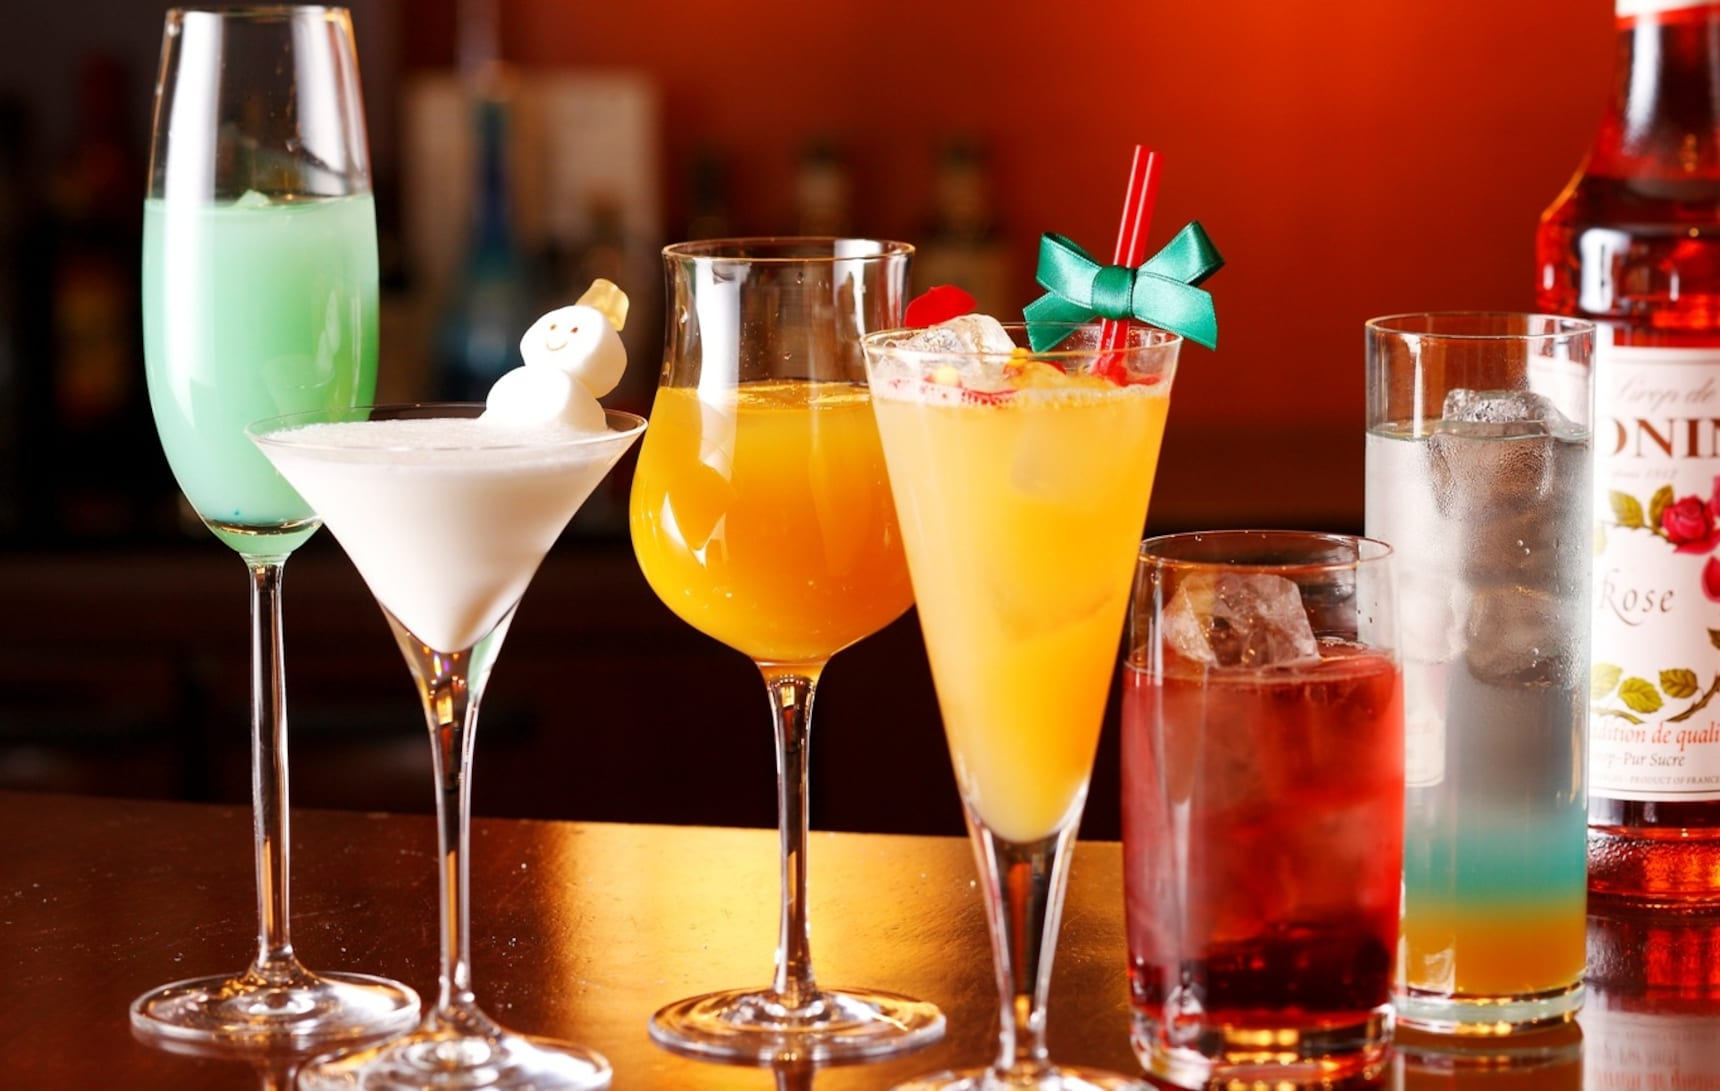 4 'Alcoholic' Beverages with 0% Alcohol | All About Japan